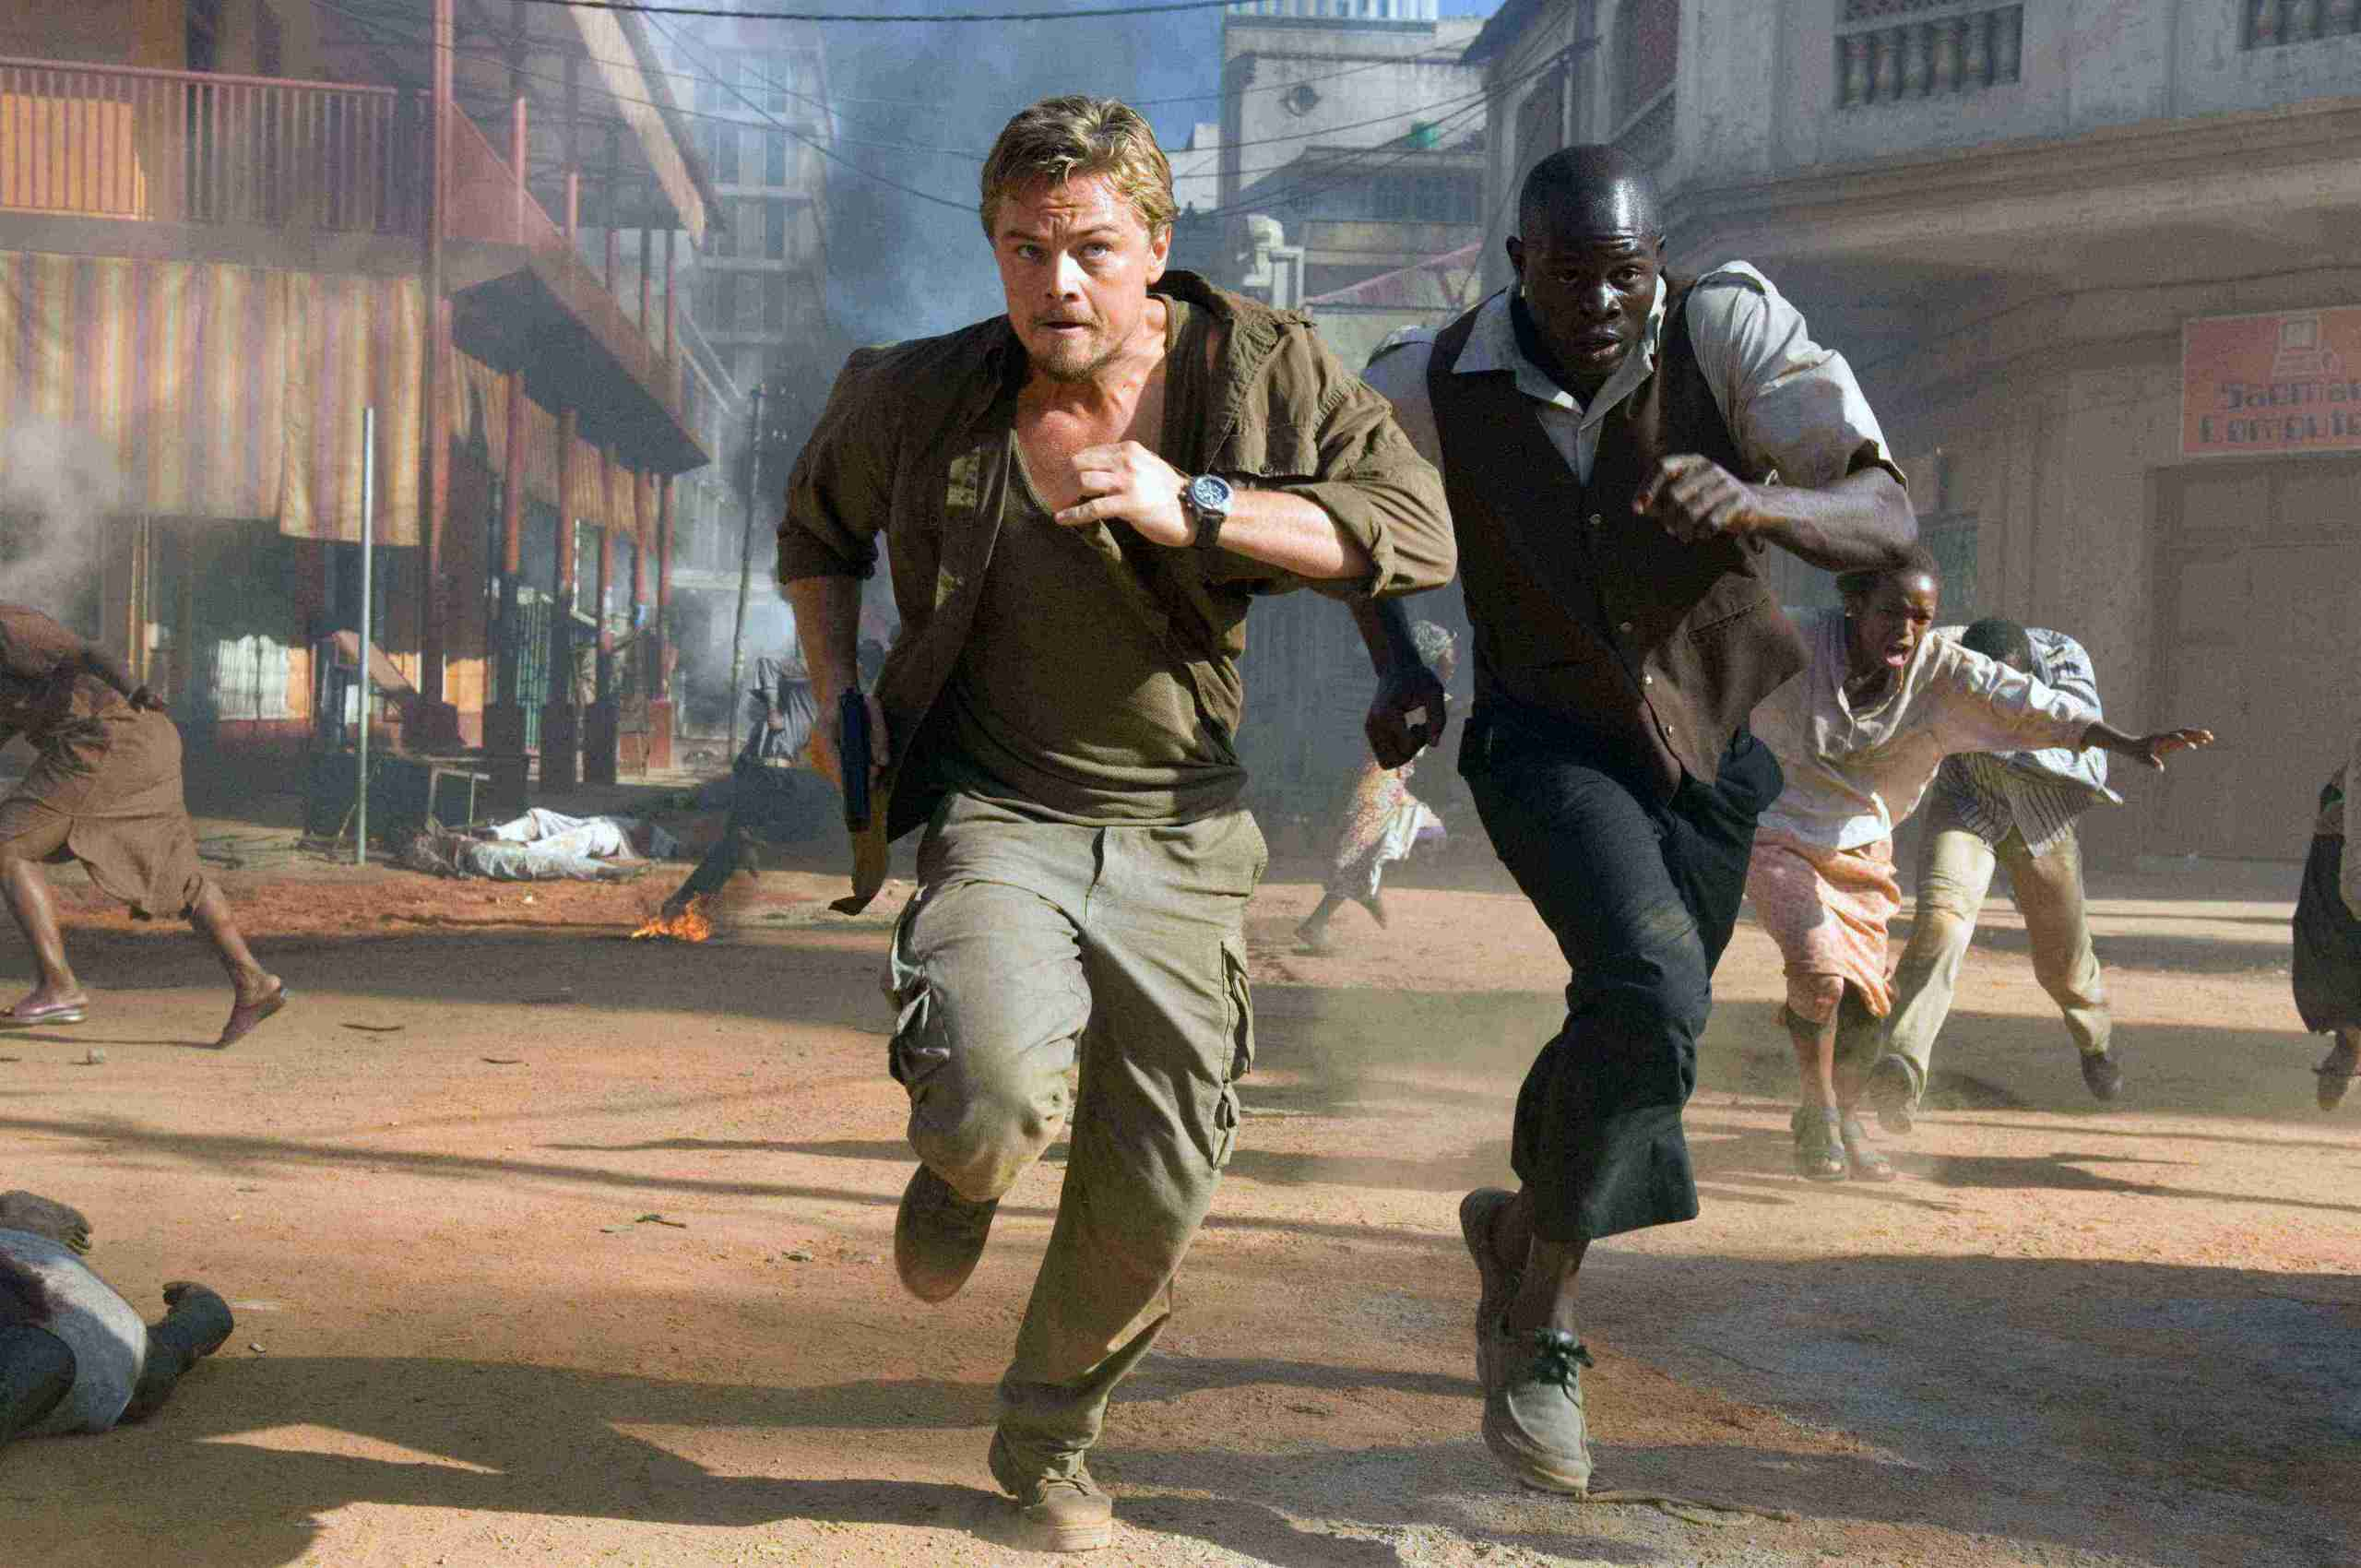 the movie blood diamond Set in sierra leone in 1999 in the midst of a civil war, blood diamond draws attention to the responsibility of citizens and businesses in the developed world to ensure that the diamonds they buy have not been used to fund conflicts abroad.